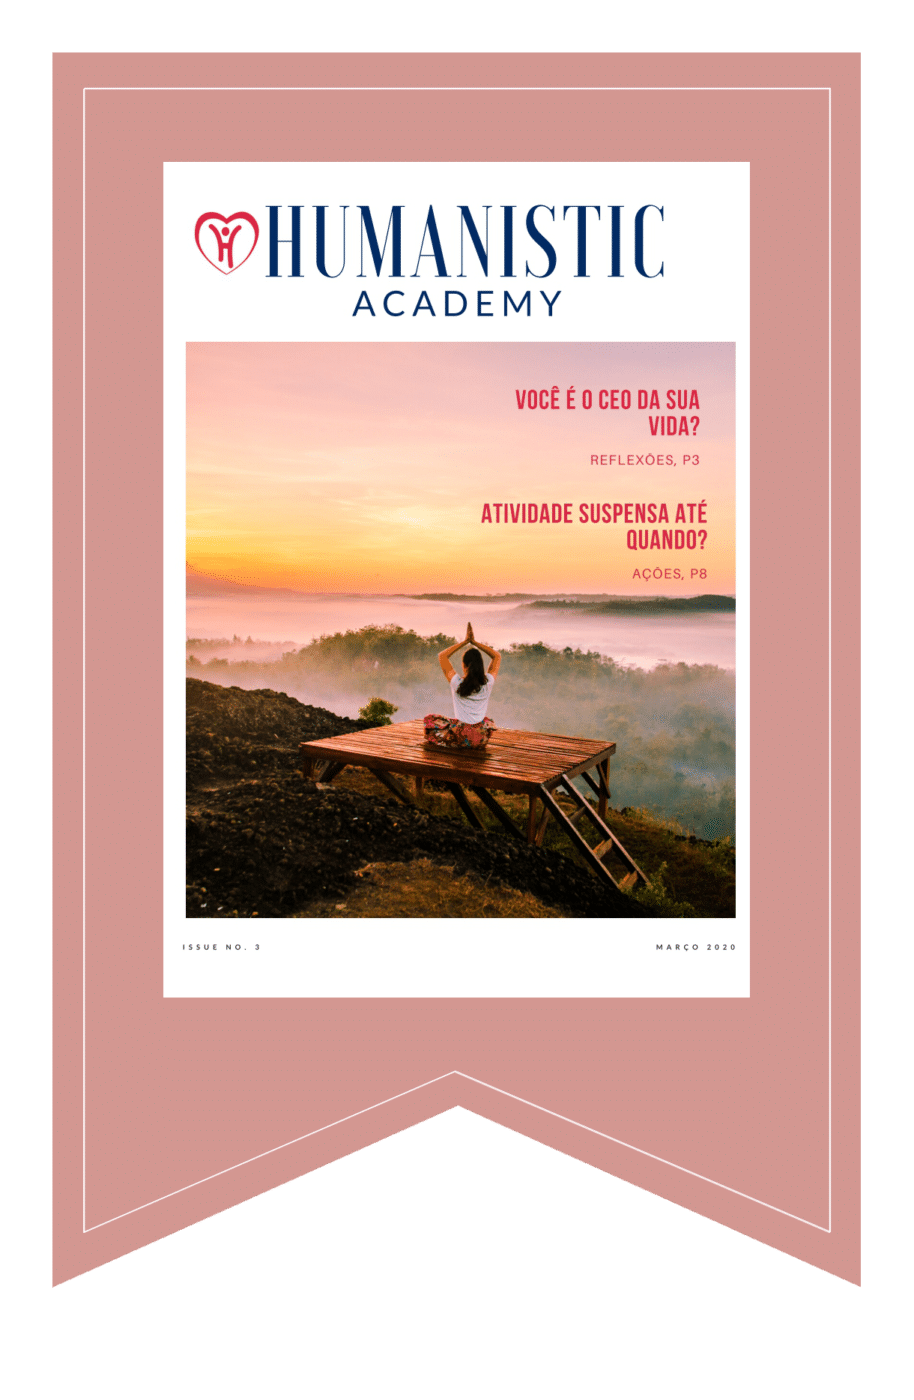 Revista Humanistic Academy